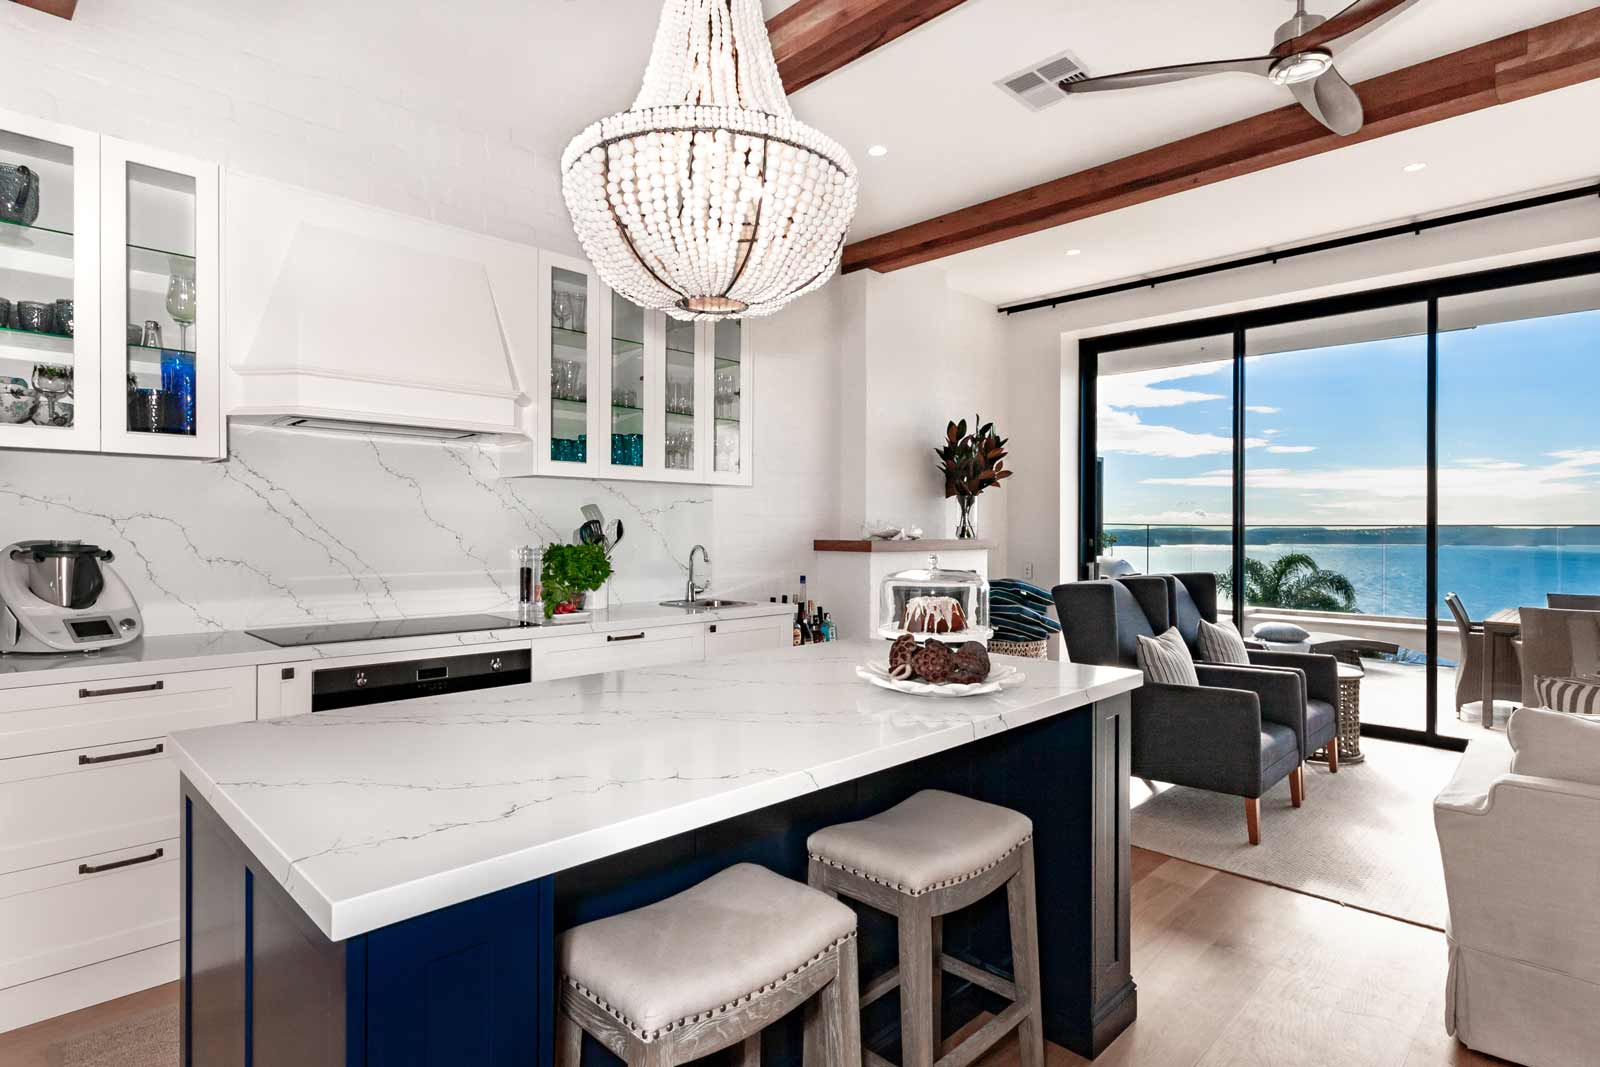 Hamptons style beachside kitchen design featuring Fisher & Paykel fridge/freezer, dulux polyurethane shaker cabinets, Quantum Quartz benchtop, Miele & Smeg appliances.